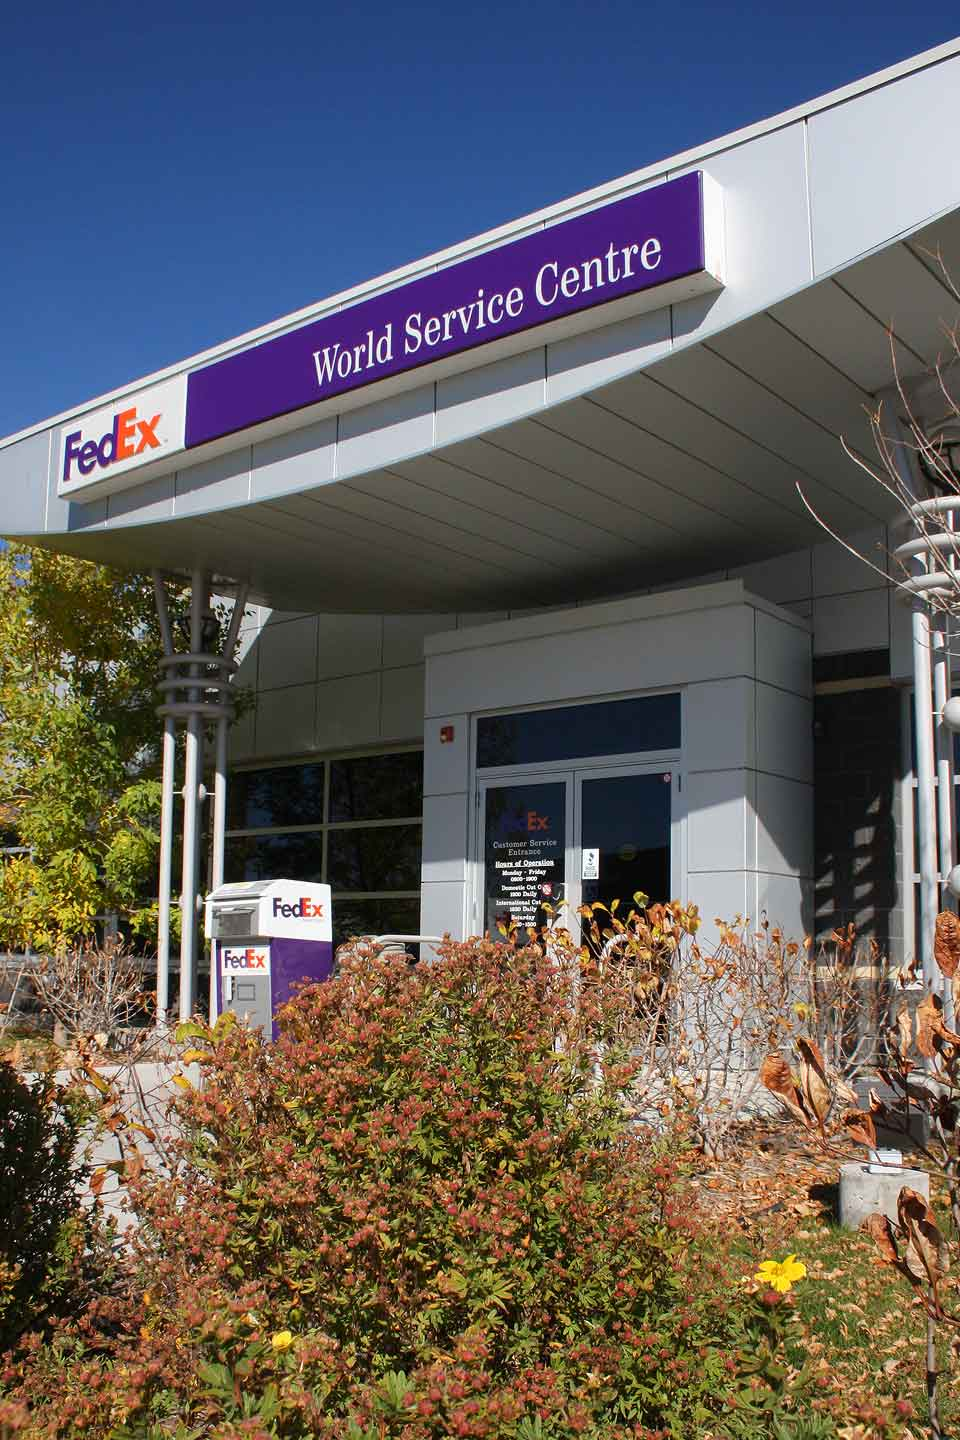 FedEx World Services Centre